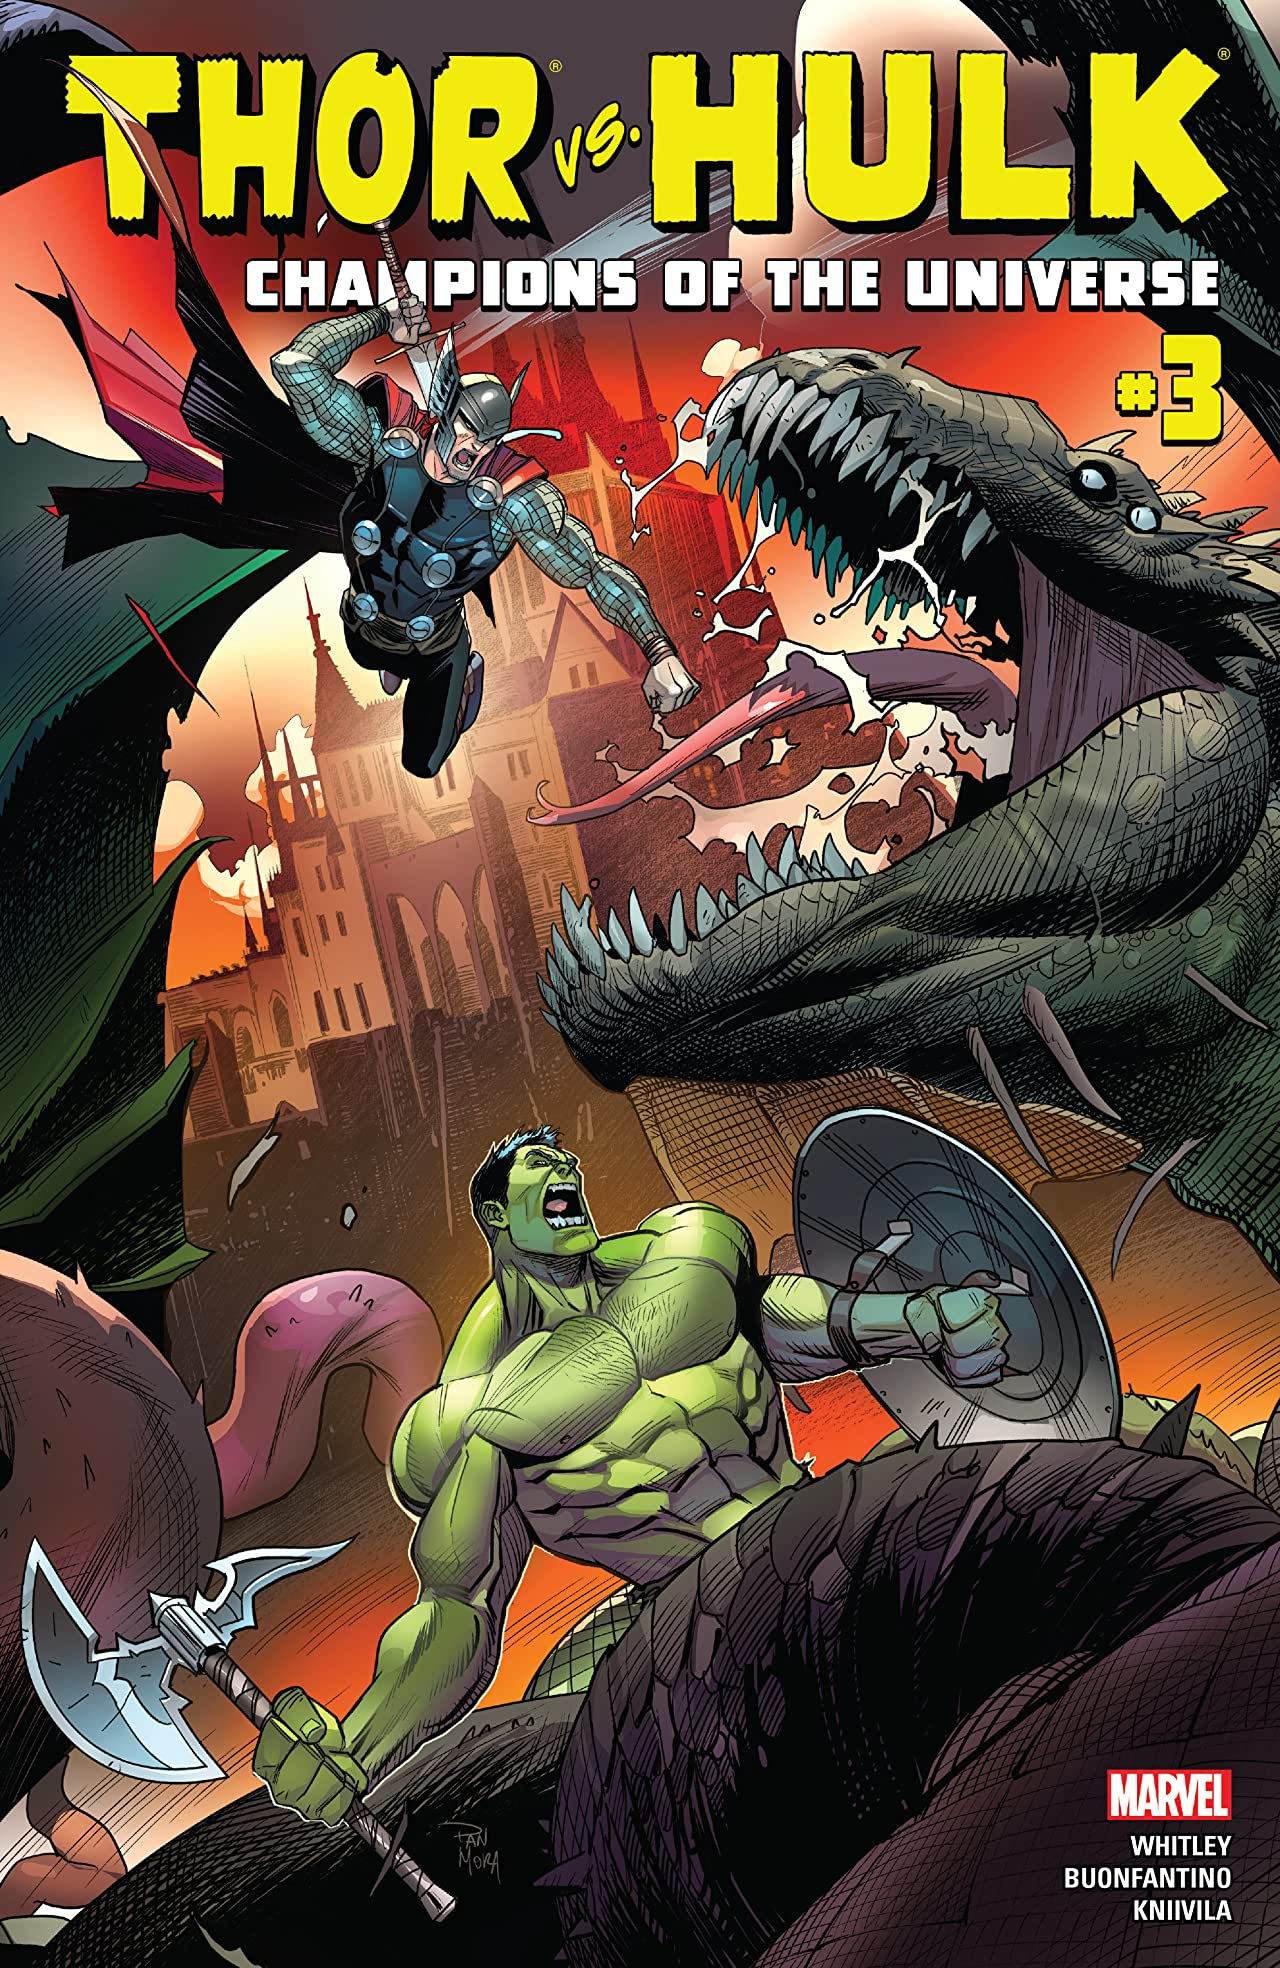 Thor vs. Hulk: Champions of the Universe (2017) #3 (of 6)